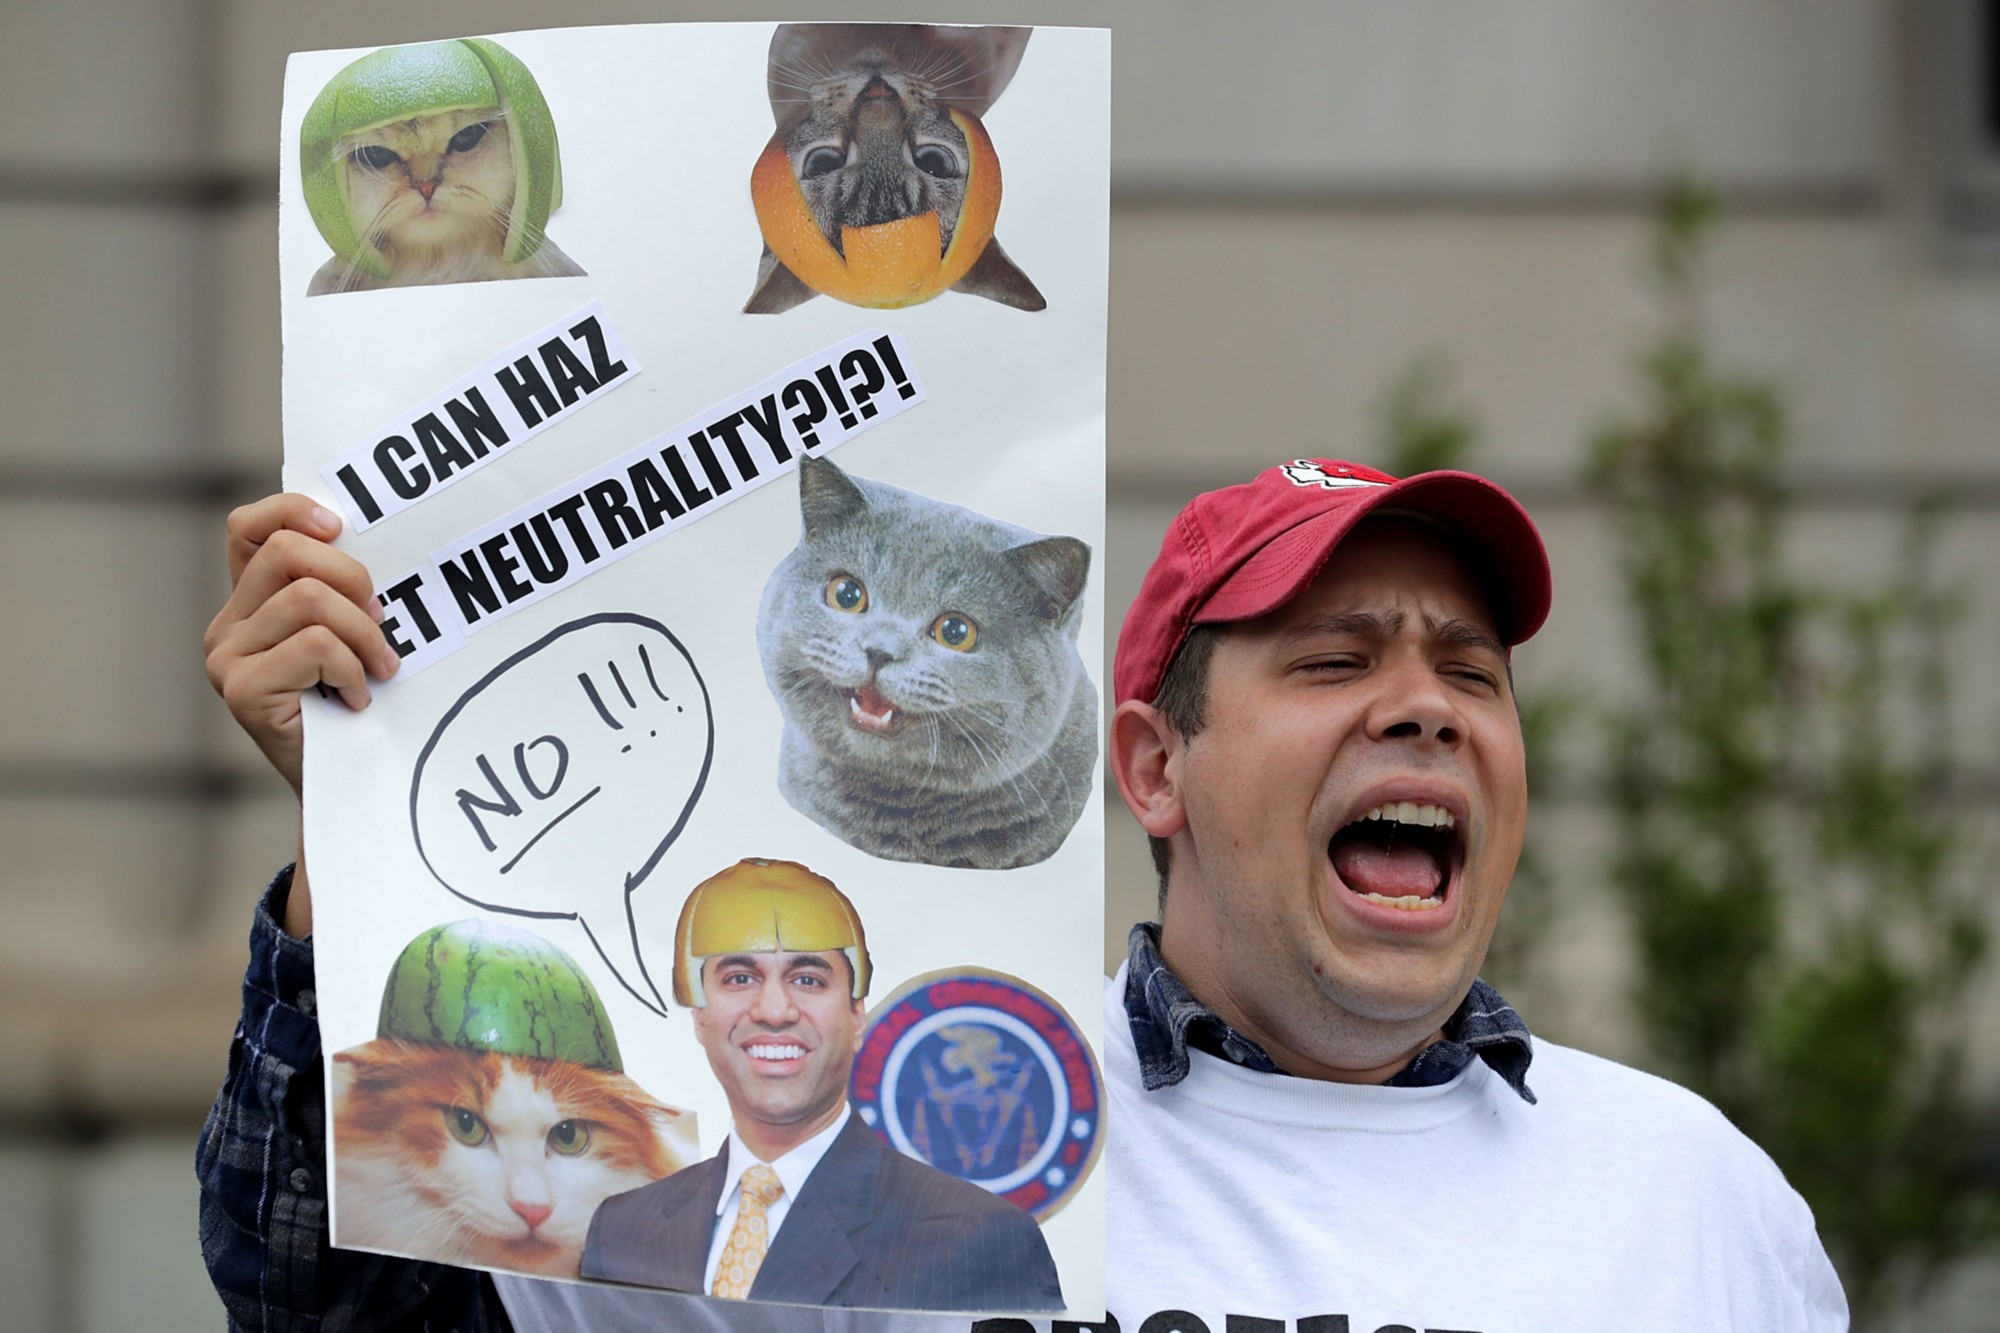 USA tech companies protest net neutrality ruling